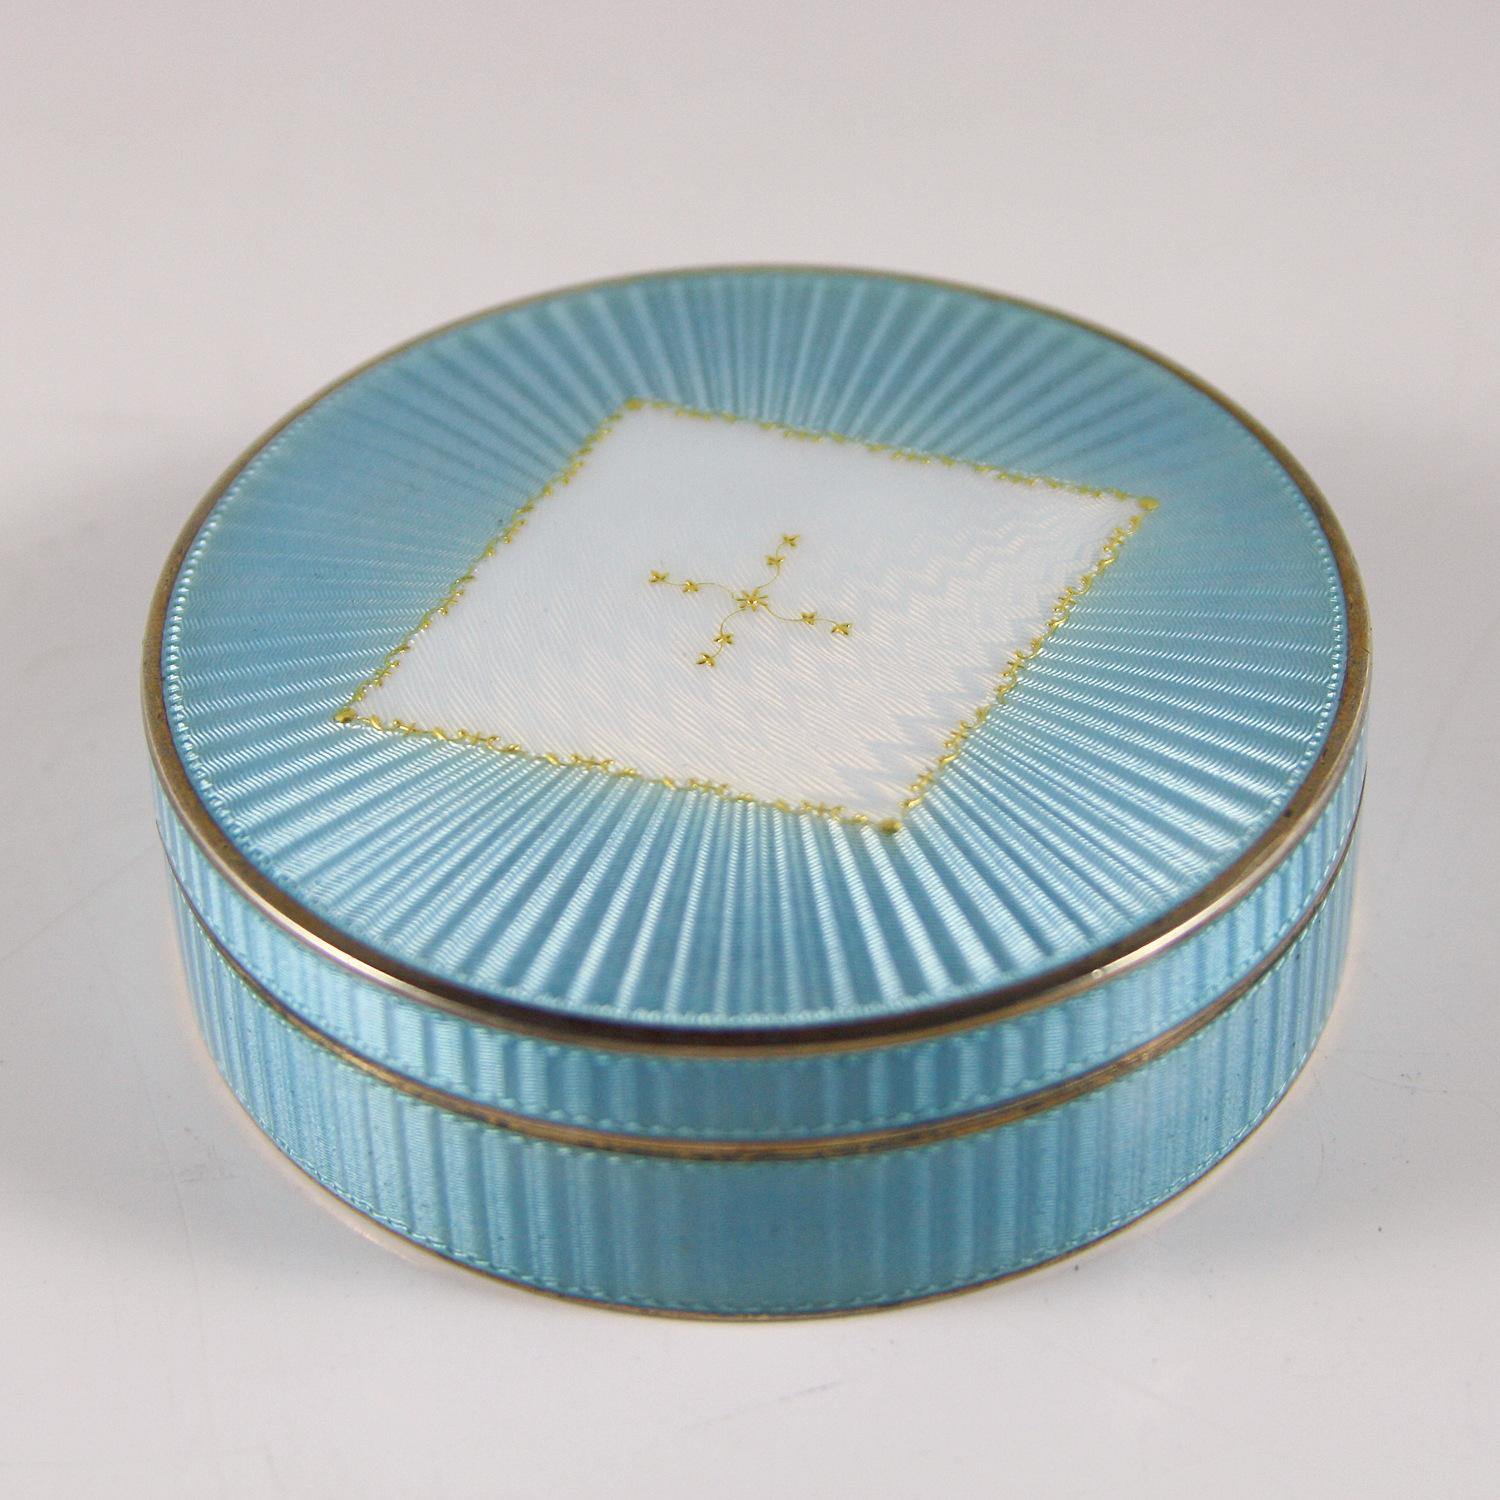 Sterling Silver Guilloche Enamel Box